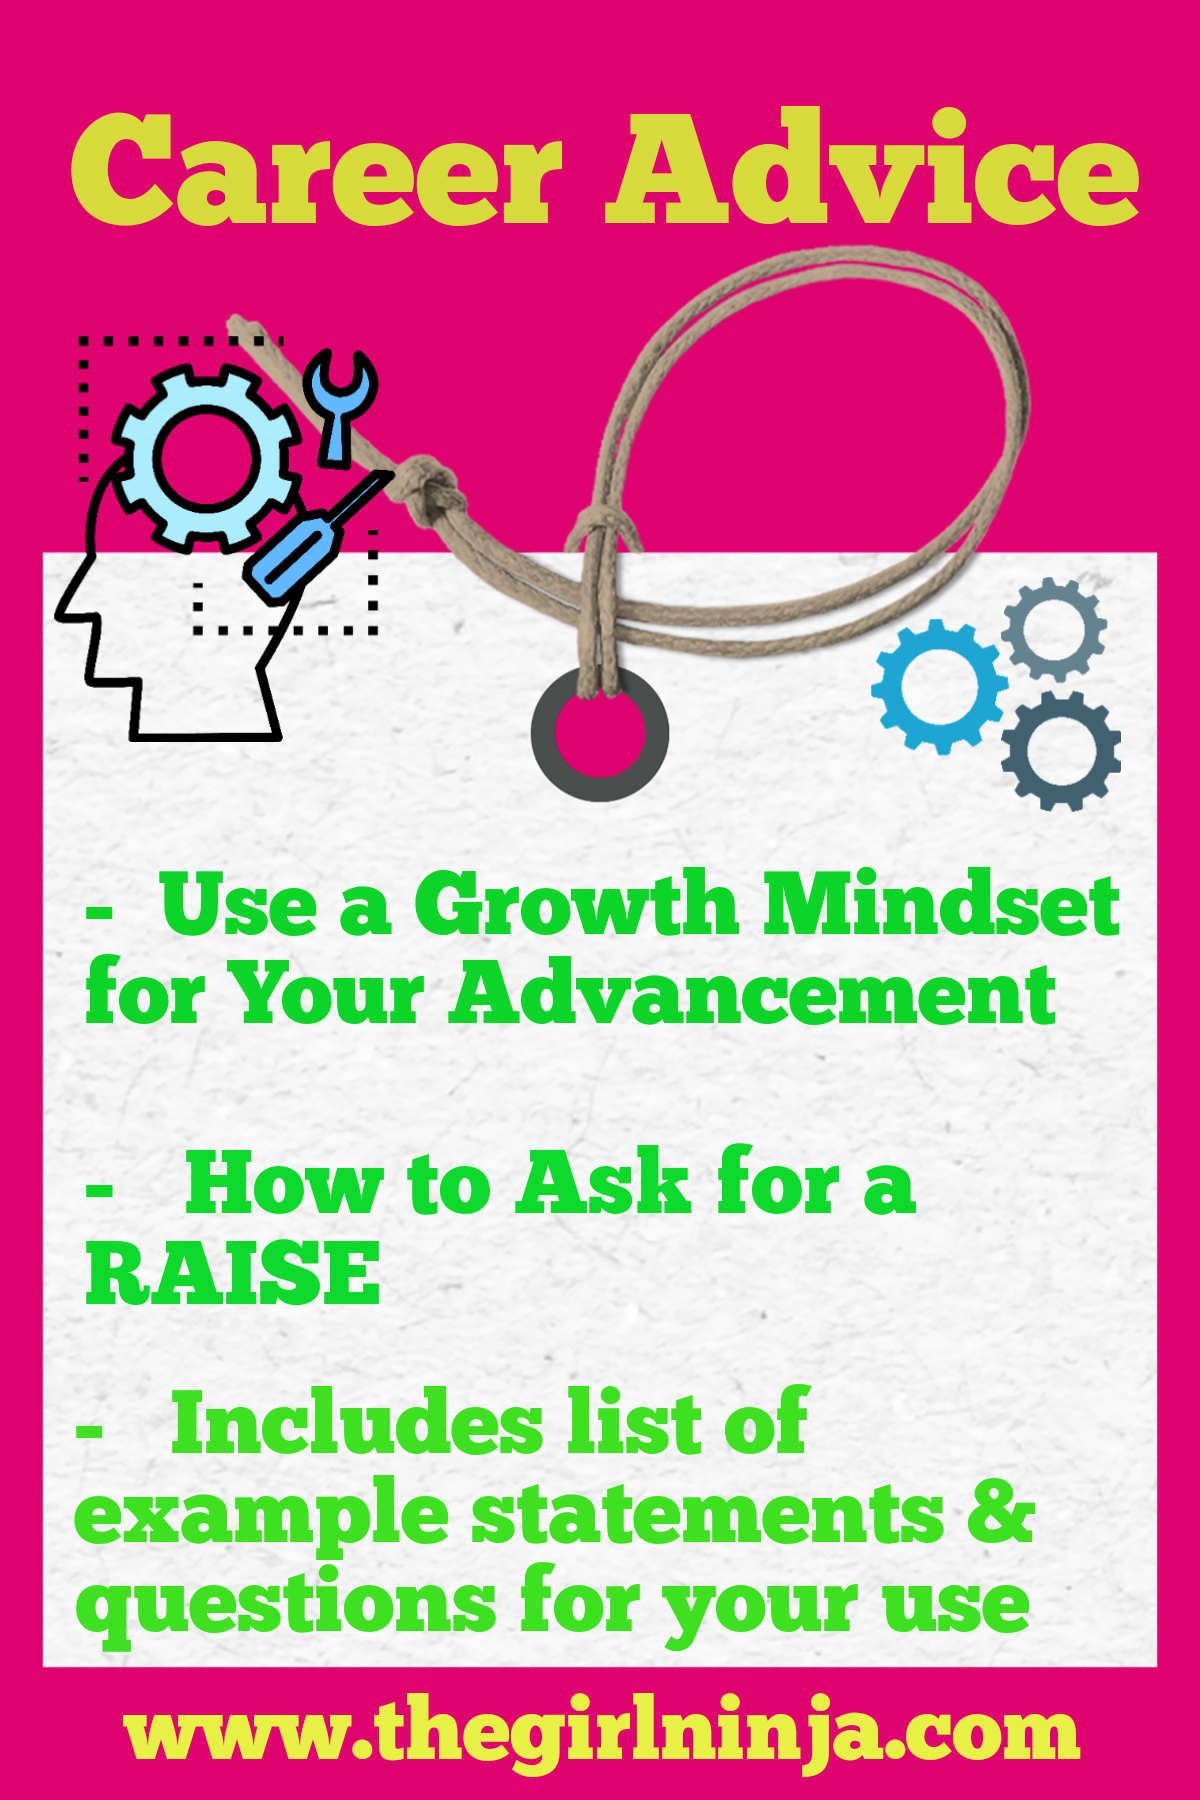 Pink rectangle with yellow text across the top that reads Career Advice. Below yellow text a white canvas tag has a black outline of a person's profile with gears coming out of their brain. On white tag green text reads - Use a Growth Mindset for Your Advancement. - How to Ask for a RAISE. - Includes list of example statements & questions for your use. At bottom center yellow text reads www.thegirlninja.com